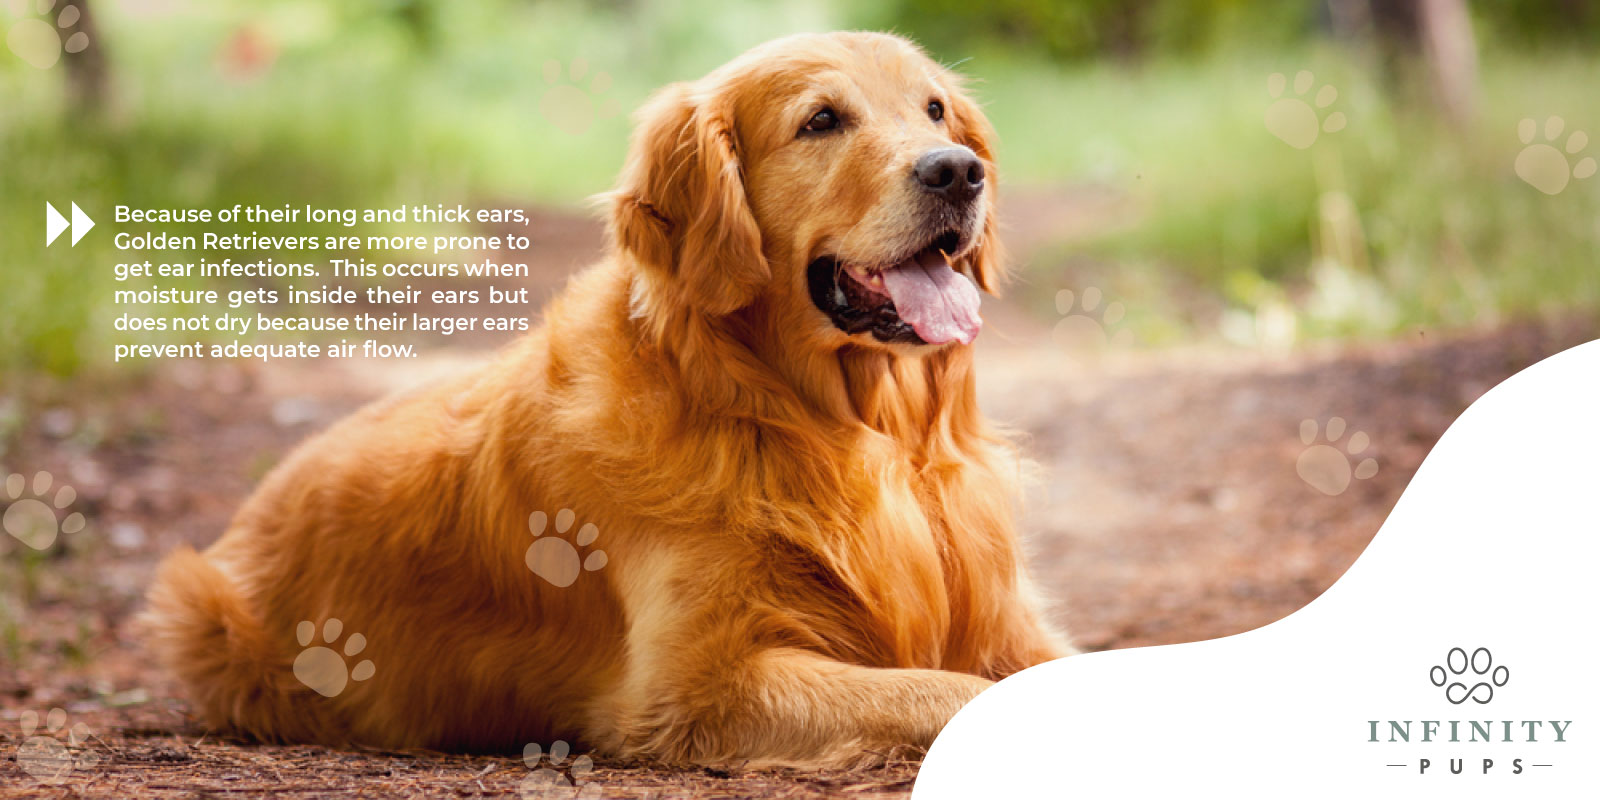 golden retrievers are prone to ear infections because of their long, thick ears